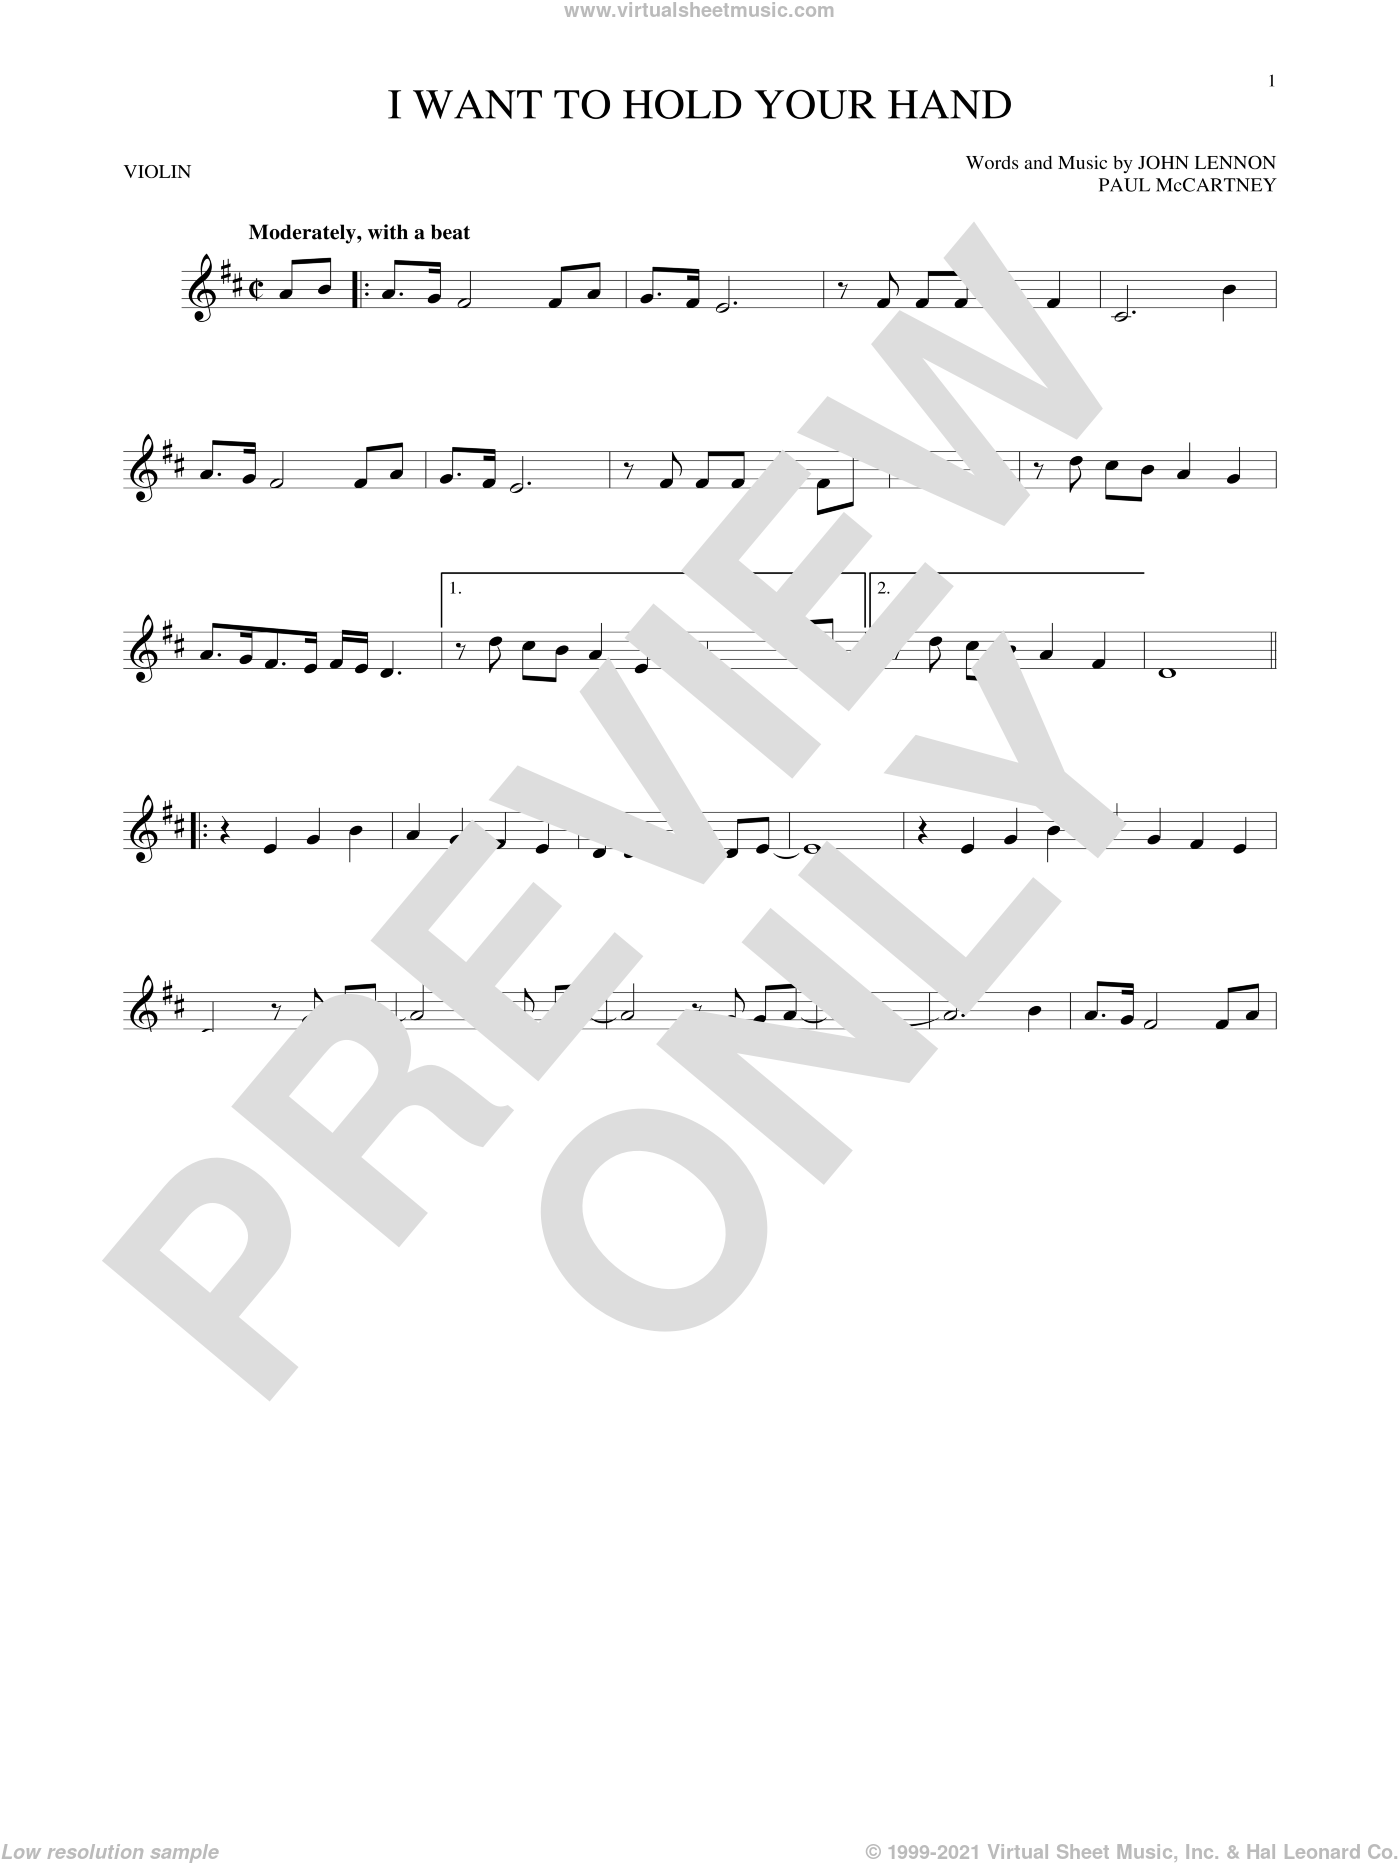 I Want To Hold Your Hand sheet music for violin solo by The Beatles, John Lennon and Paul McCartney, intermediate violin. Score Image Preview.